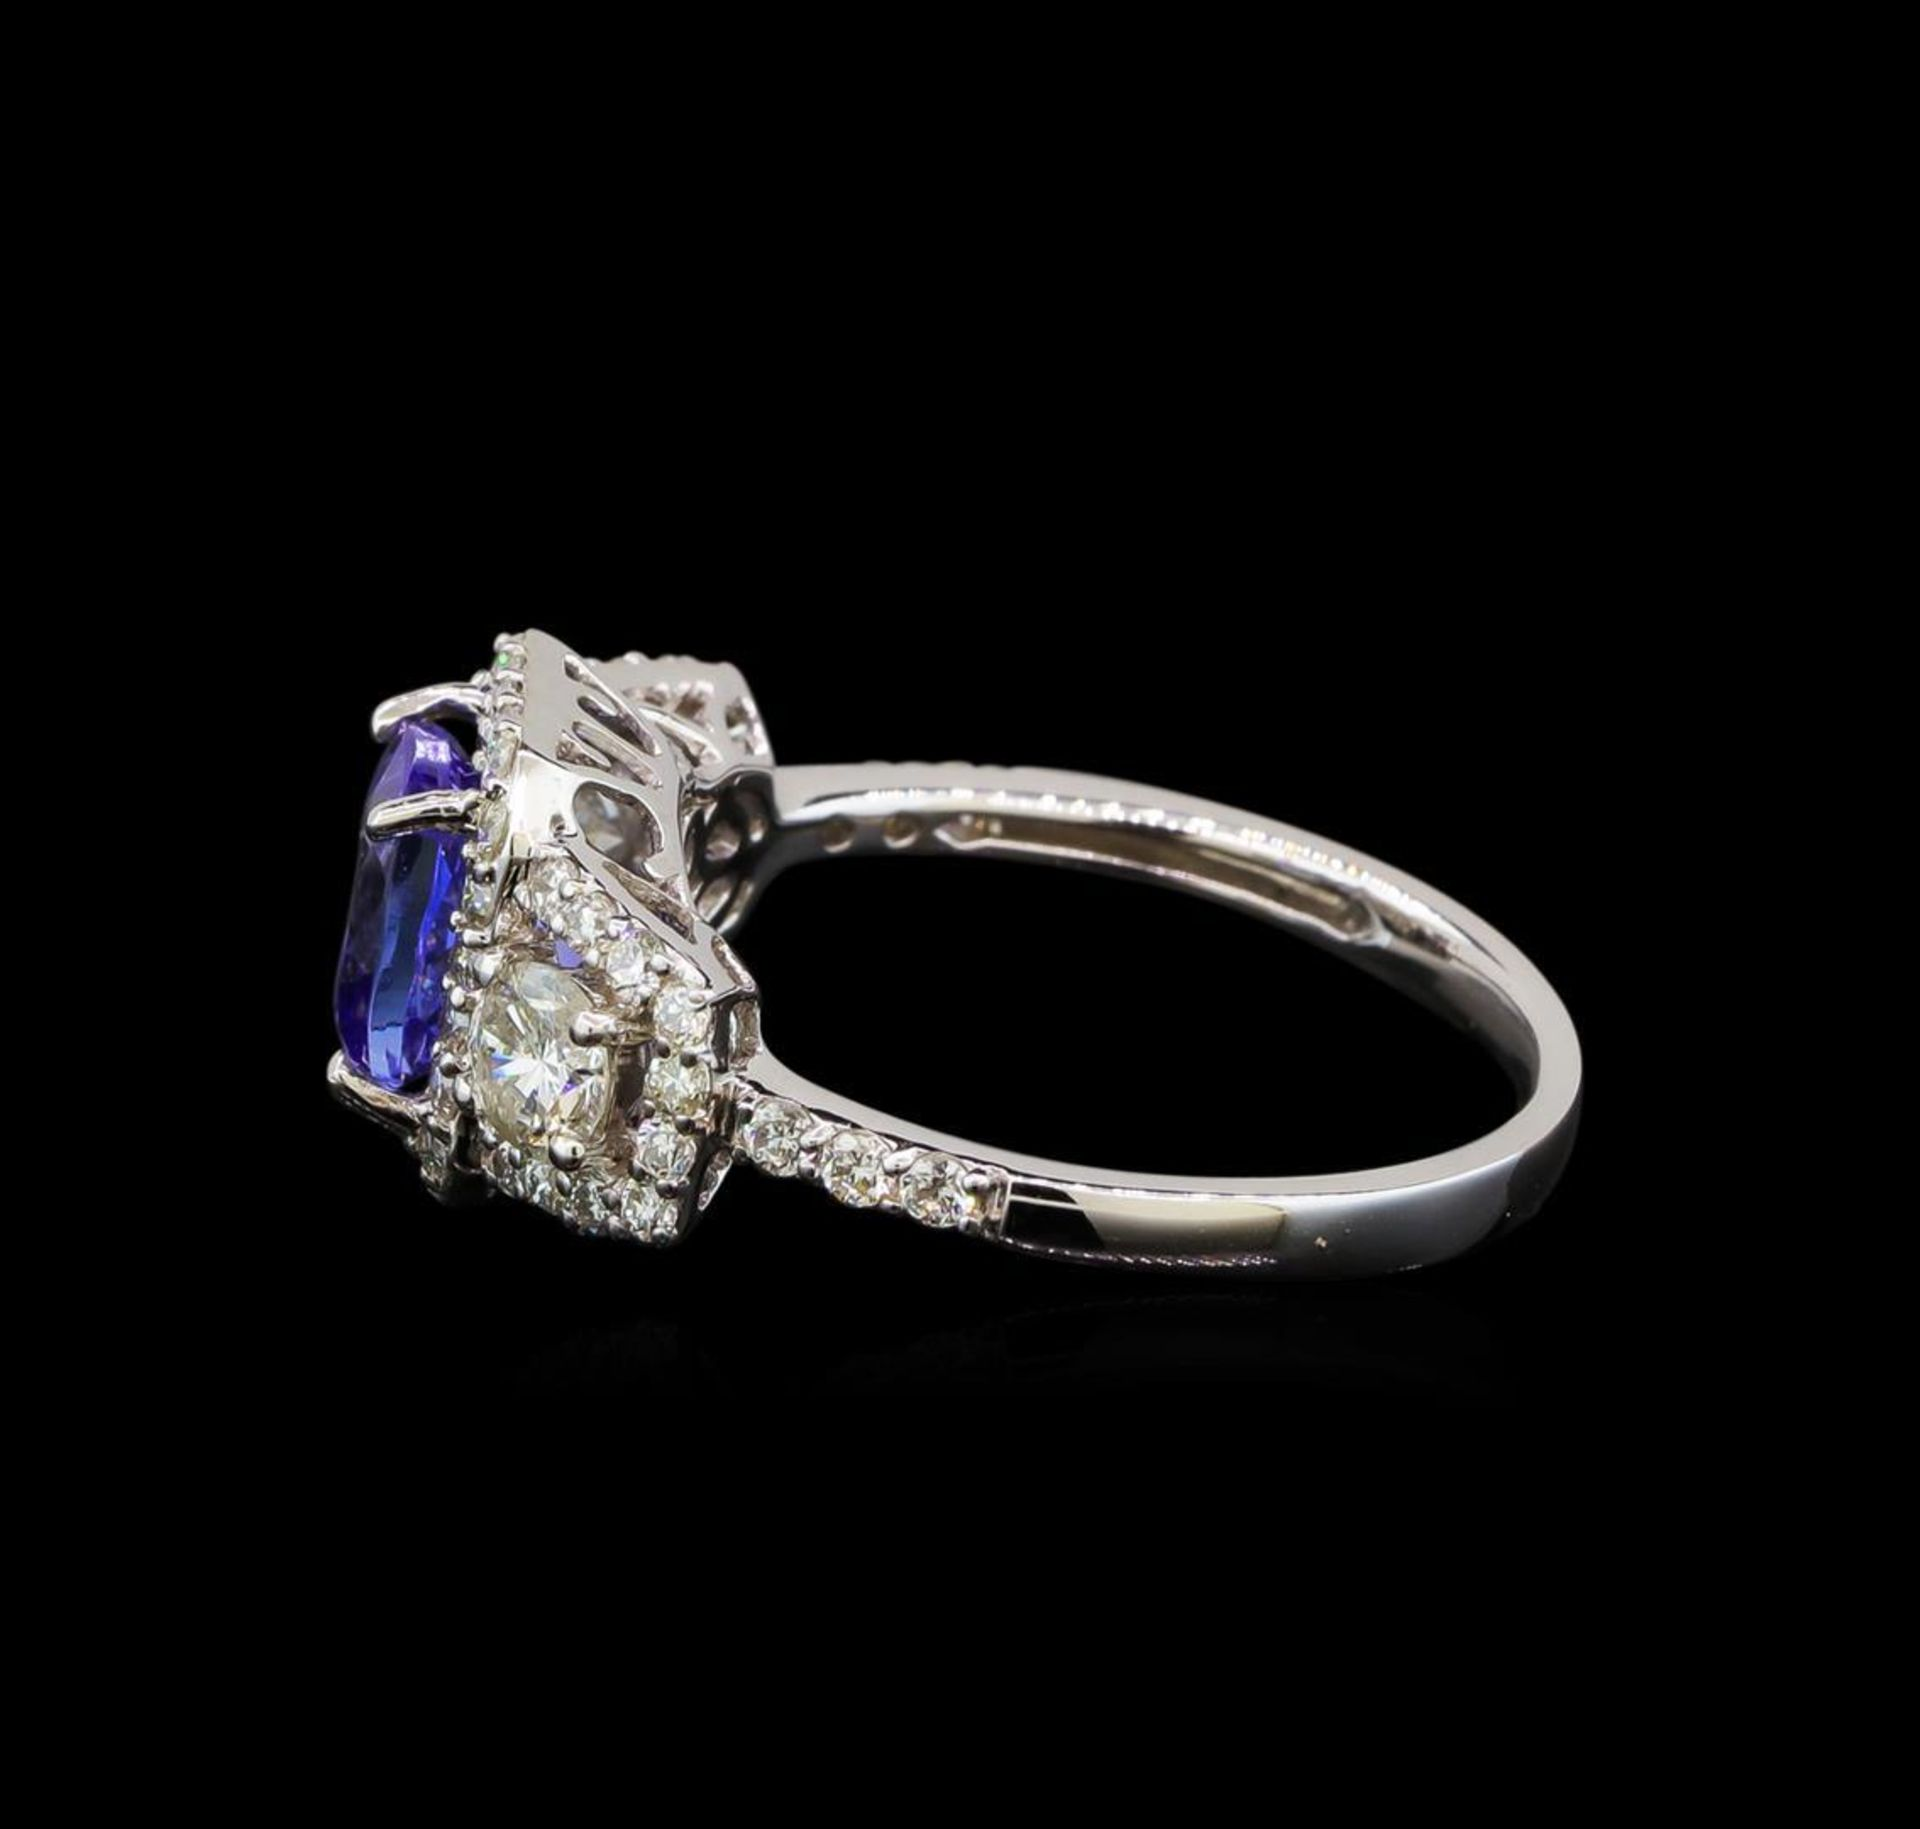 18KT White Gold 1.41 ctw Tanzanite and Diamond Ring - Image 3 of 5